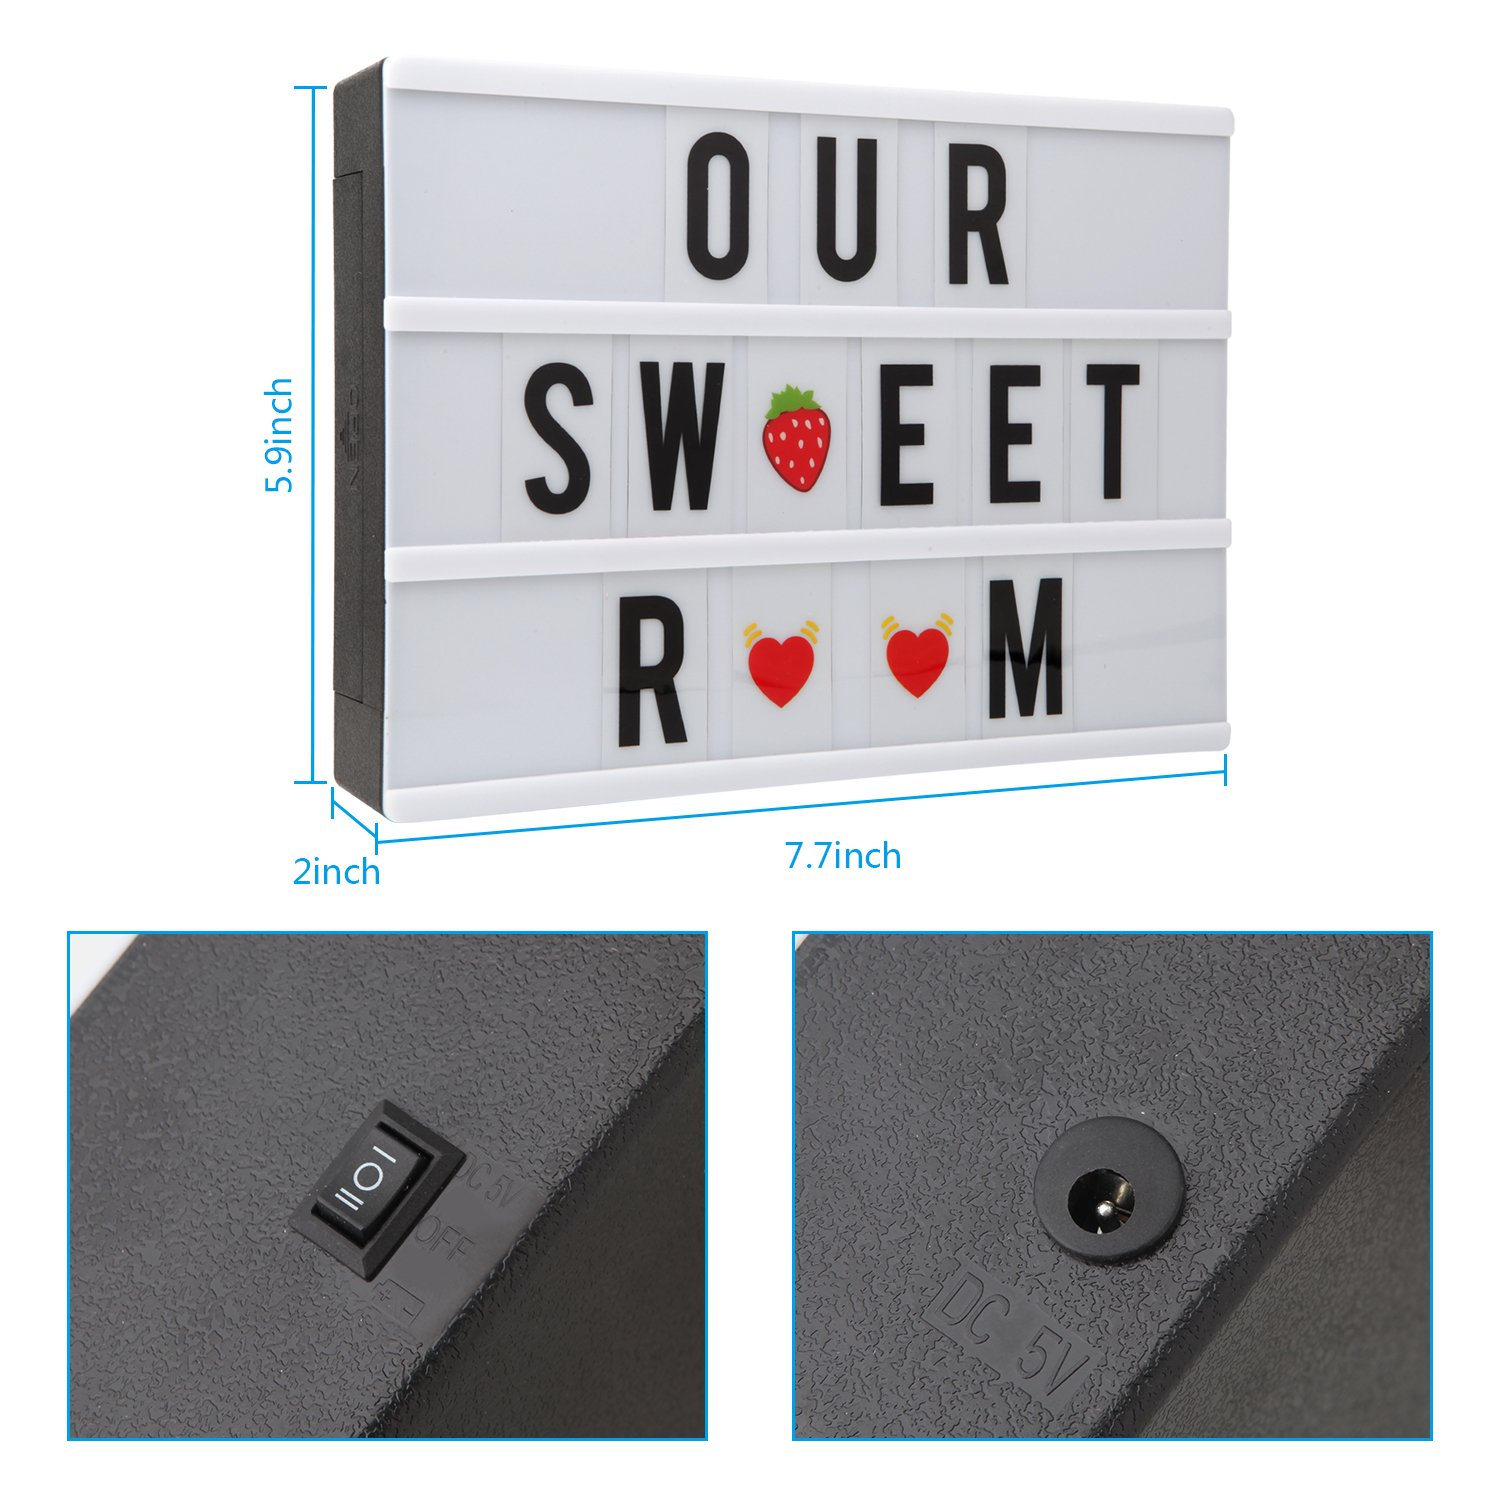 A4 7 Colours Changing Cinematic Light up Box 120 Letters NXENTC LED Message Cinema Sign Box with Wireless Remote Control